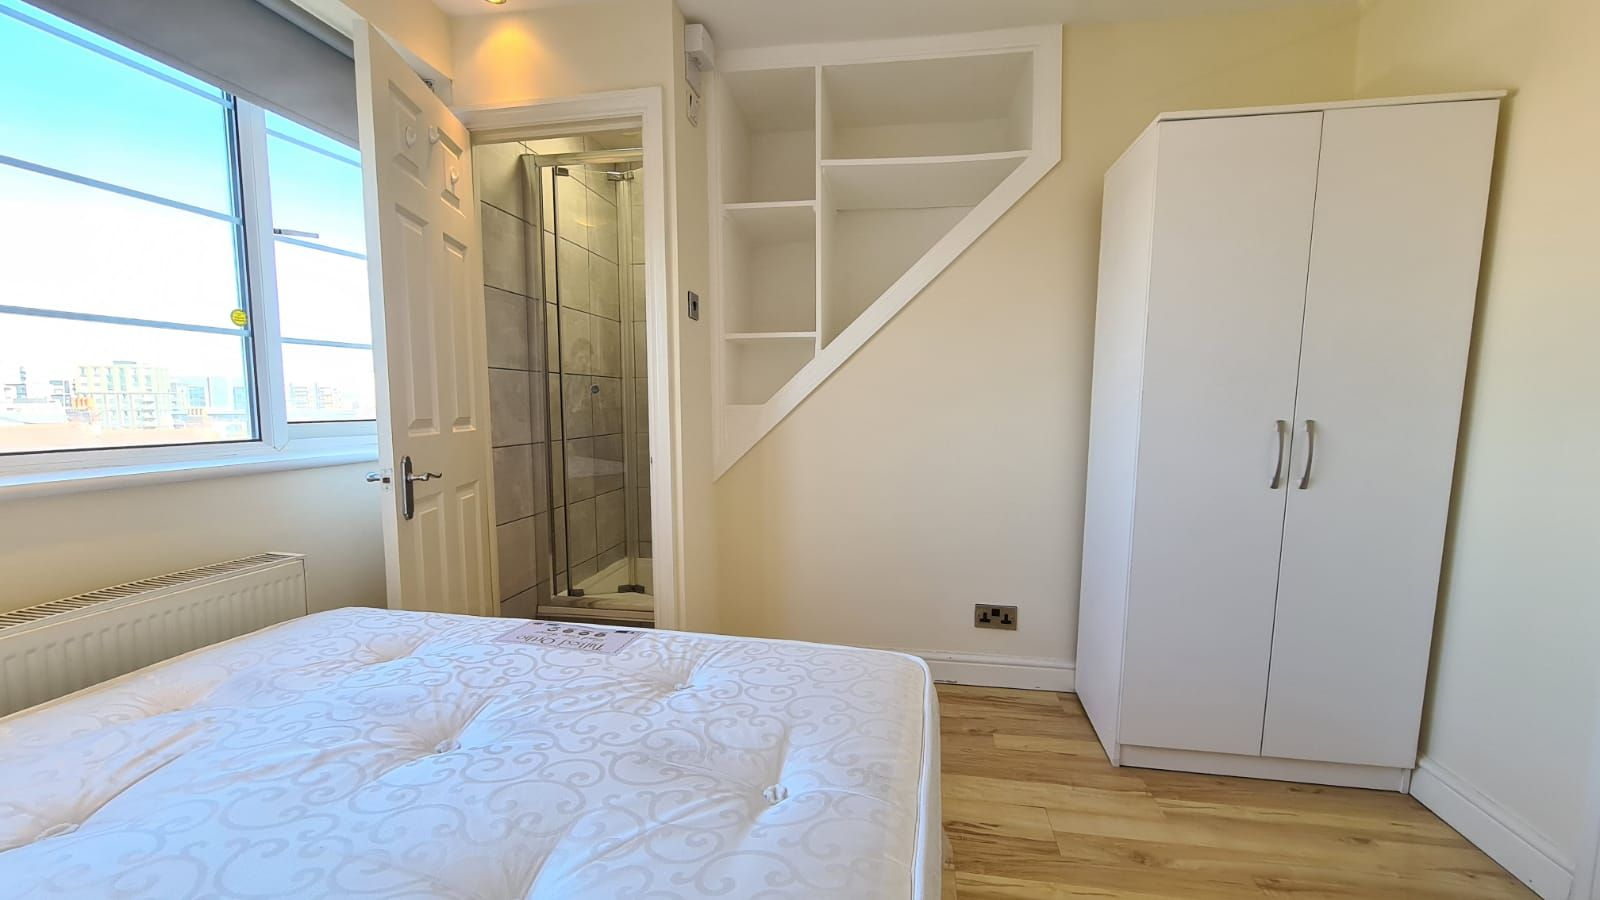 1 bedroom flat flat/apartment To Let in Wembley - Bedroom